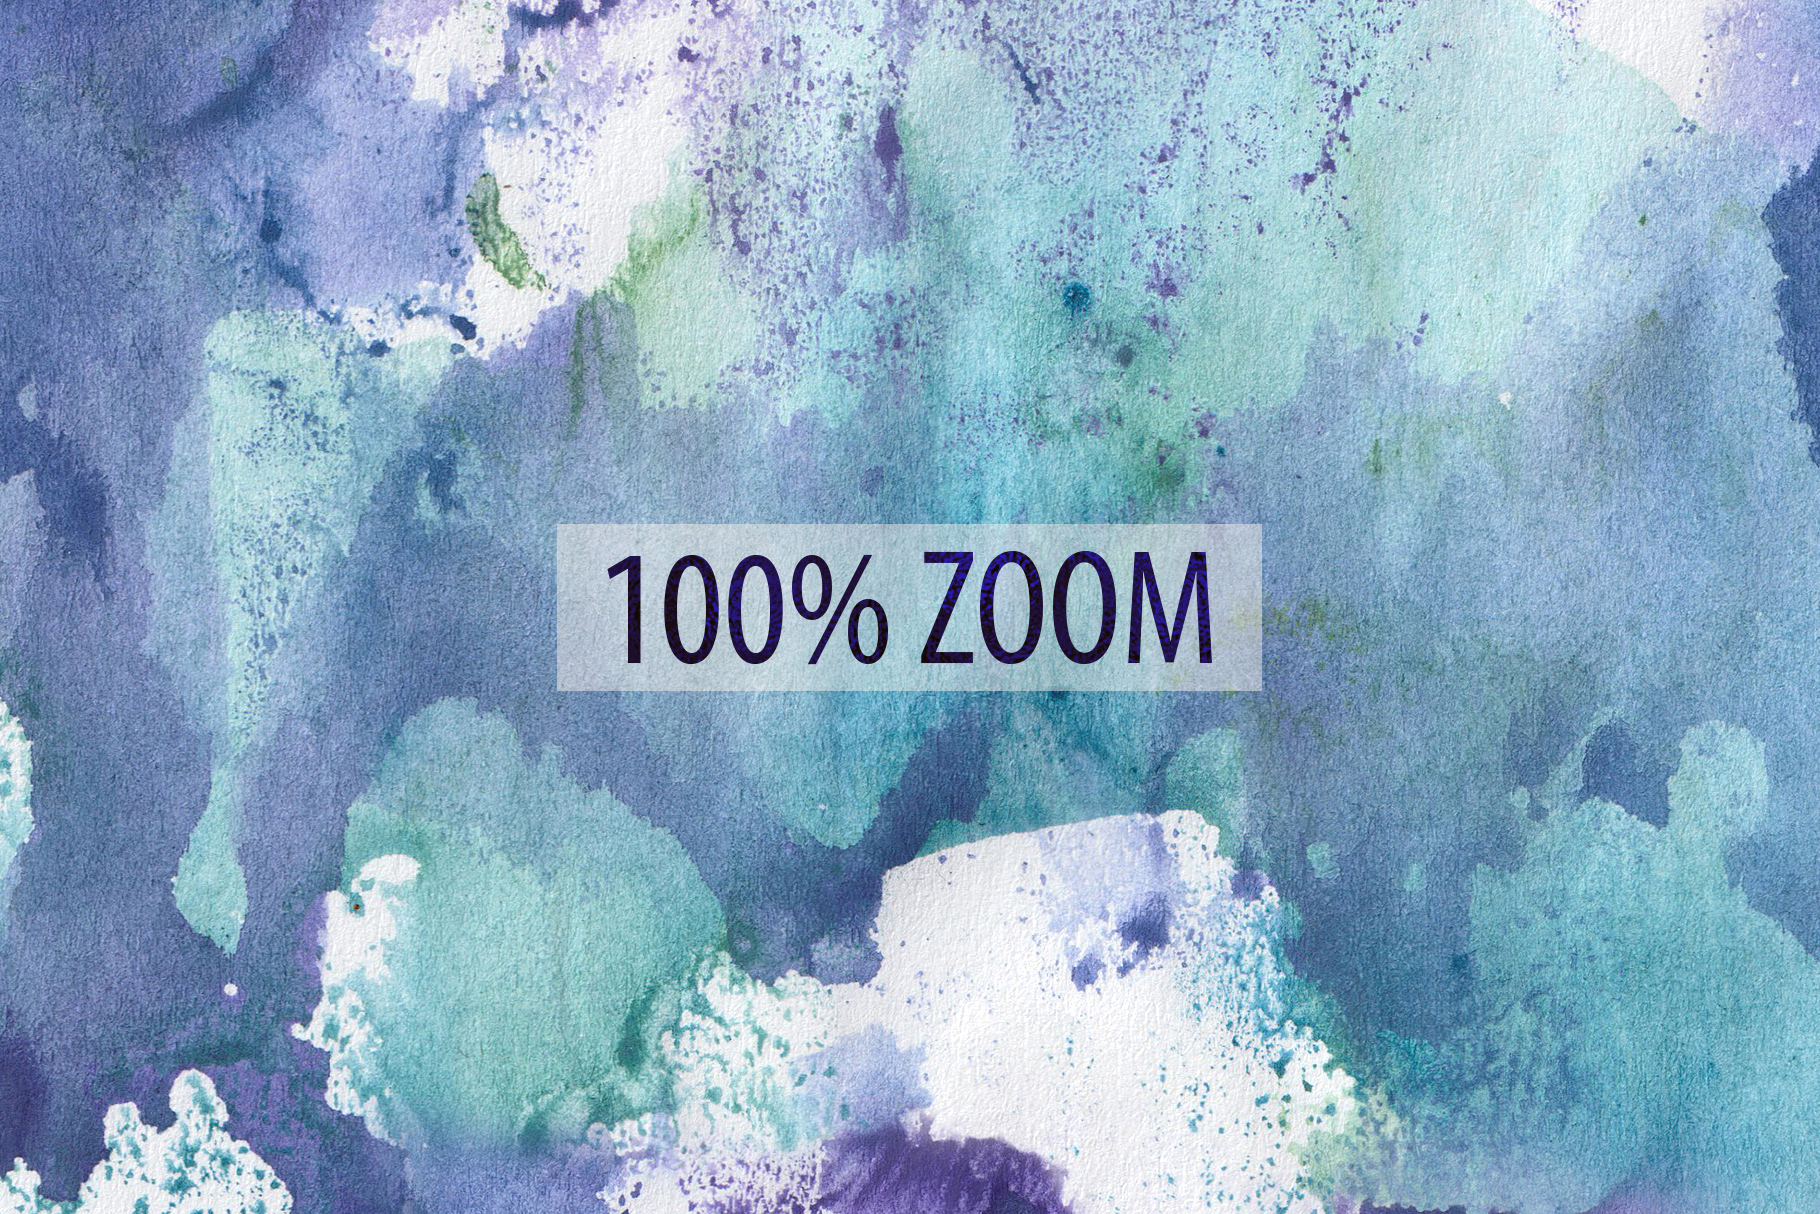 Seamless Watercolor Textures - 10 Watercolour Backgrounds example image 9